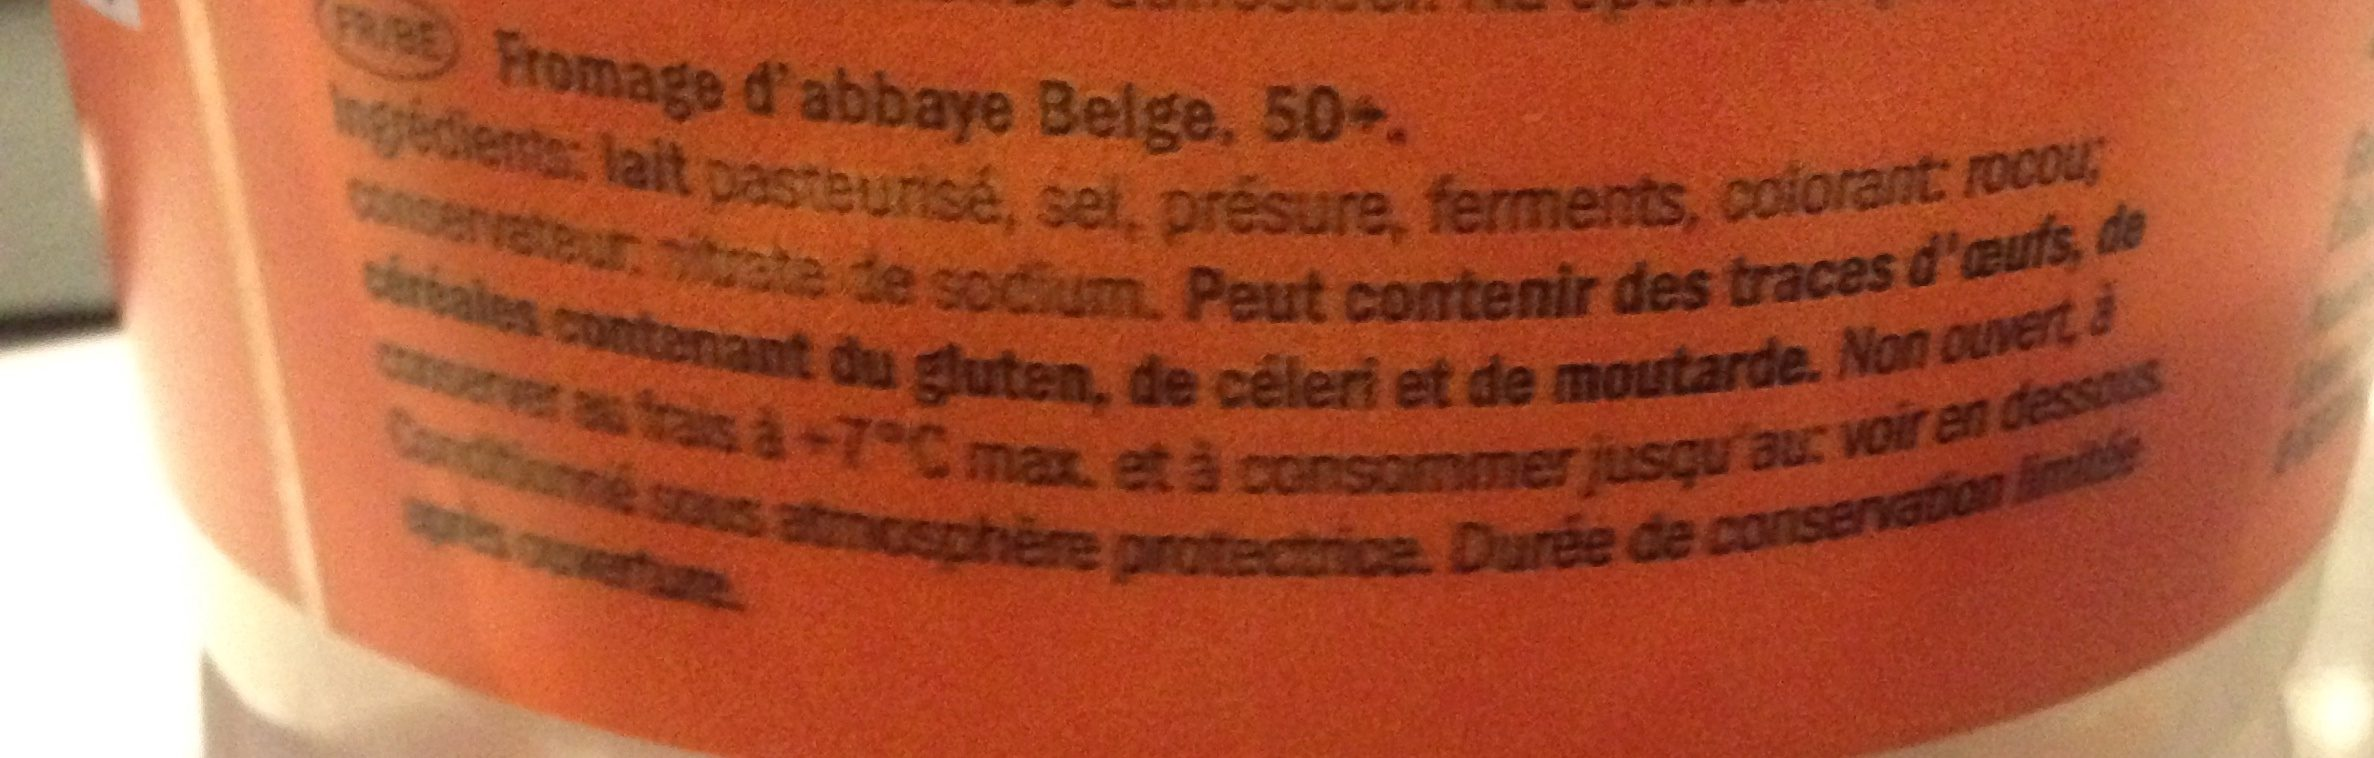 Fromage d'abbaye (30% MG) - Ingrédients - fr